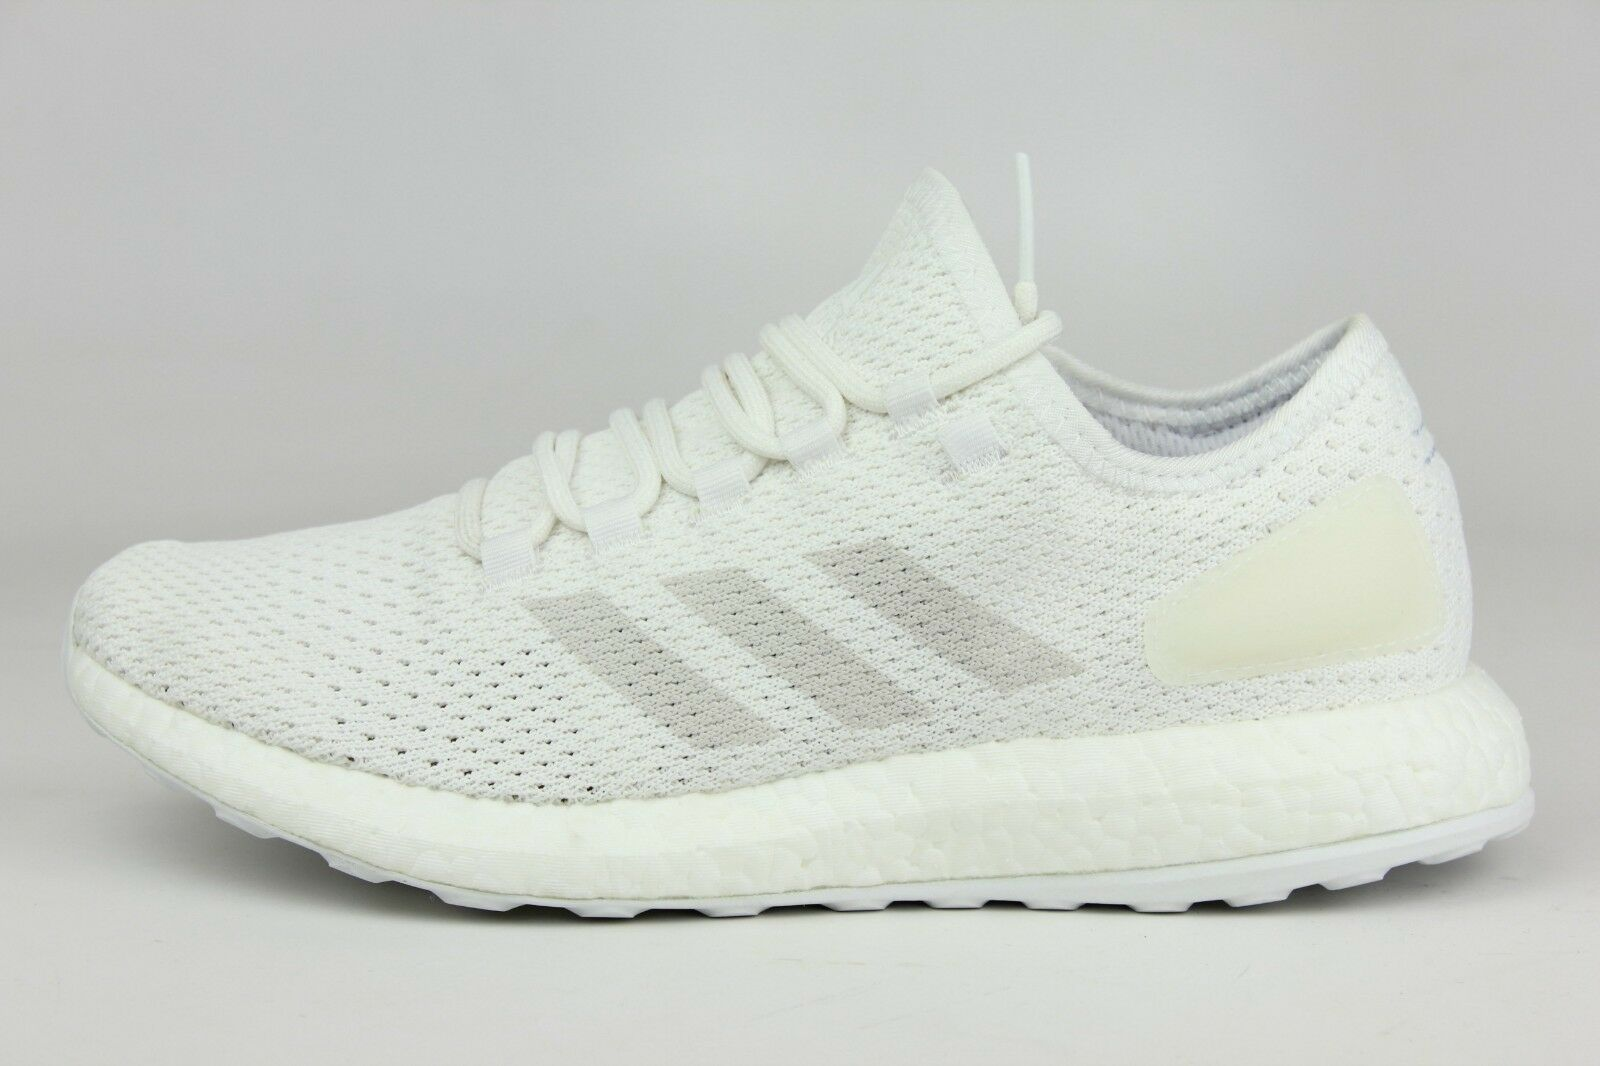 ADIDAS ORIGINALS PUREBOOST CLIMA WHITE CRYSTAL GREY MENS SIZE SNEAKERS BY8897